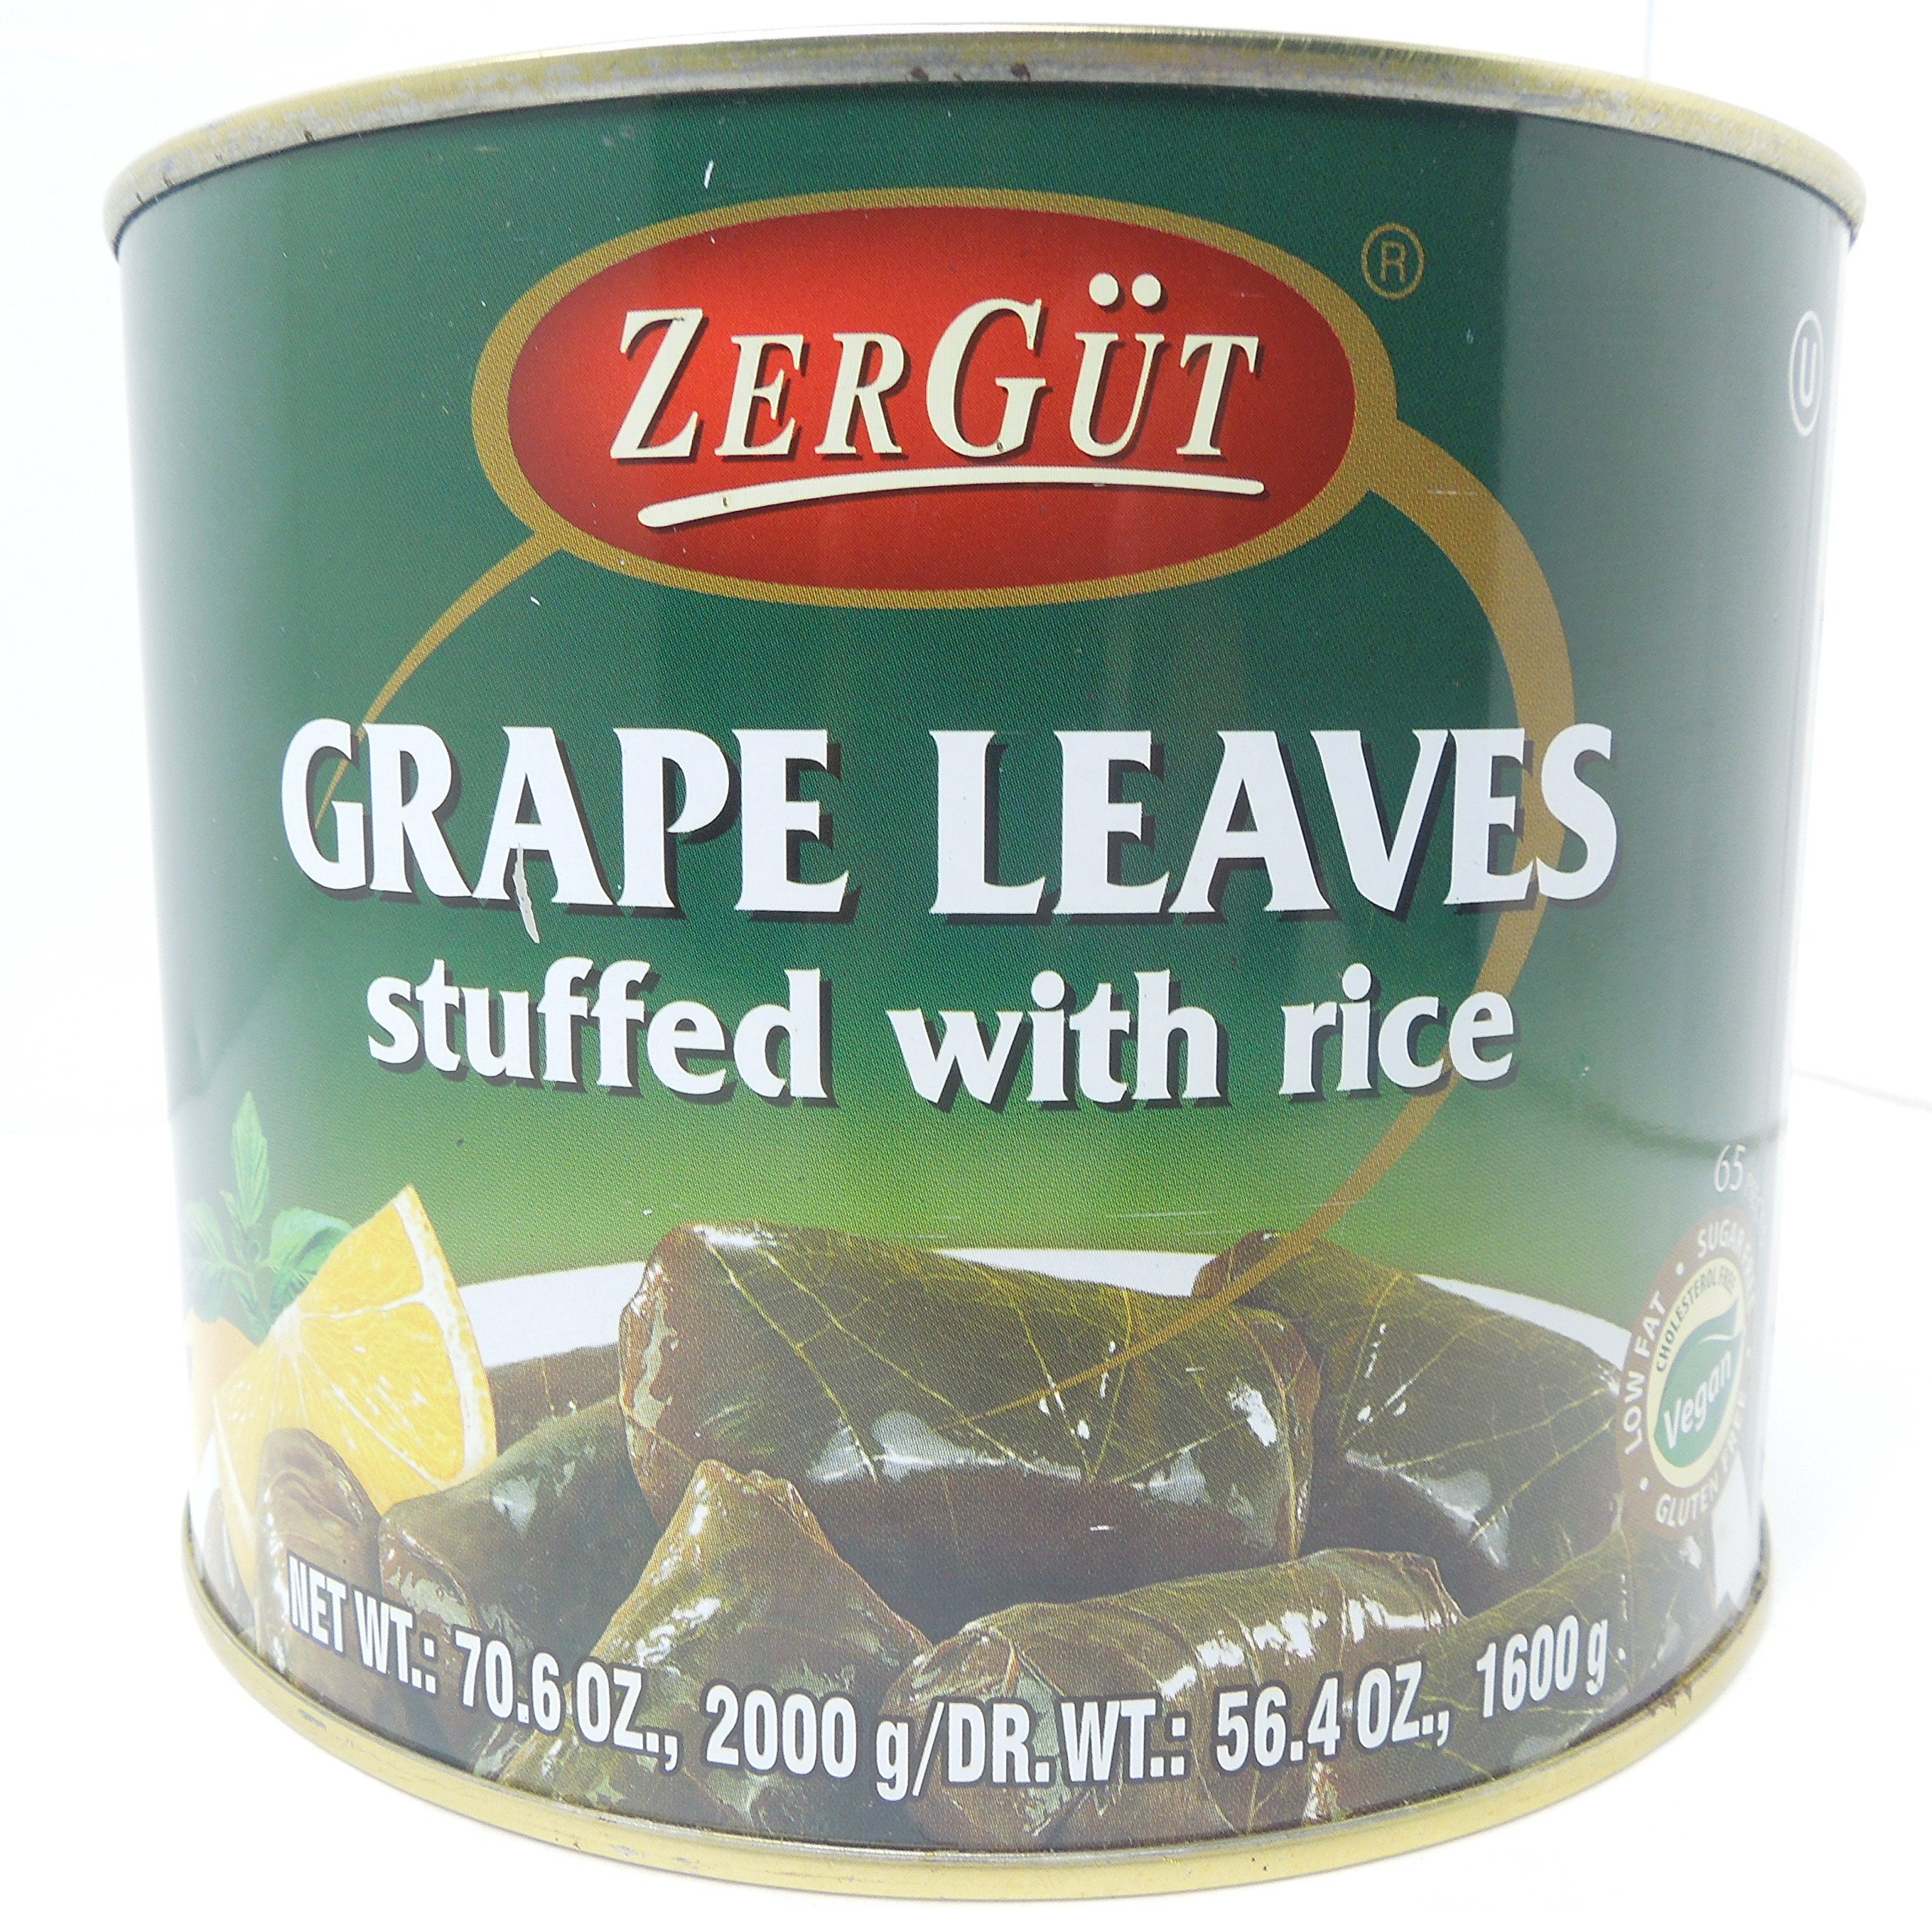 Zergut Stuffed Grape Leaves, Grape leaves stuffed with rice (56.4 Oz)